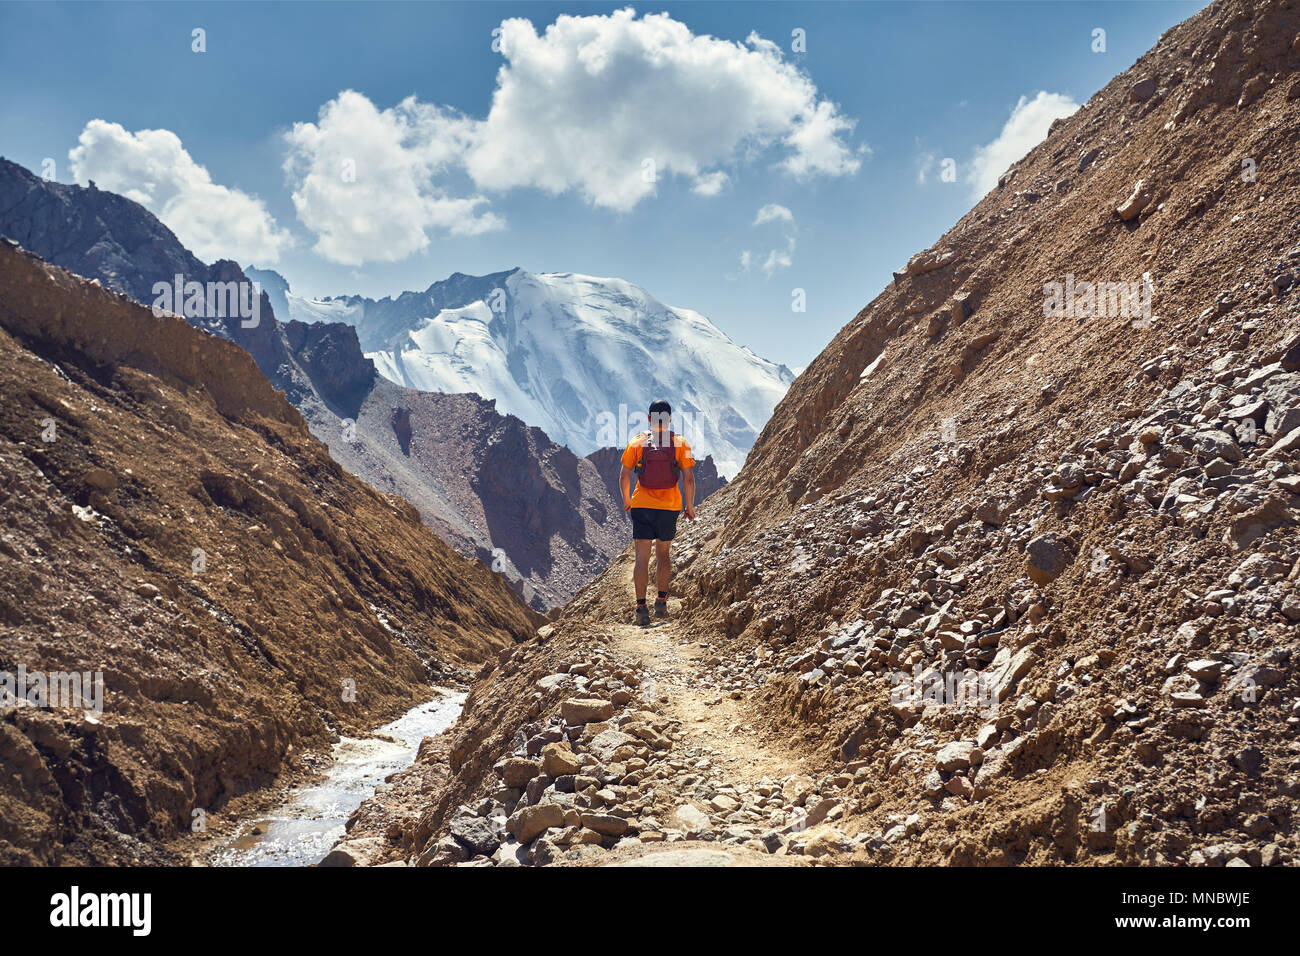 Hiker in orange shirt with backpack walking on the trail with snowy summit at background - Stock Image